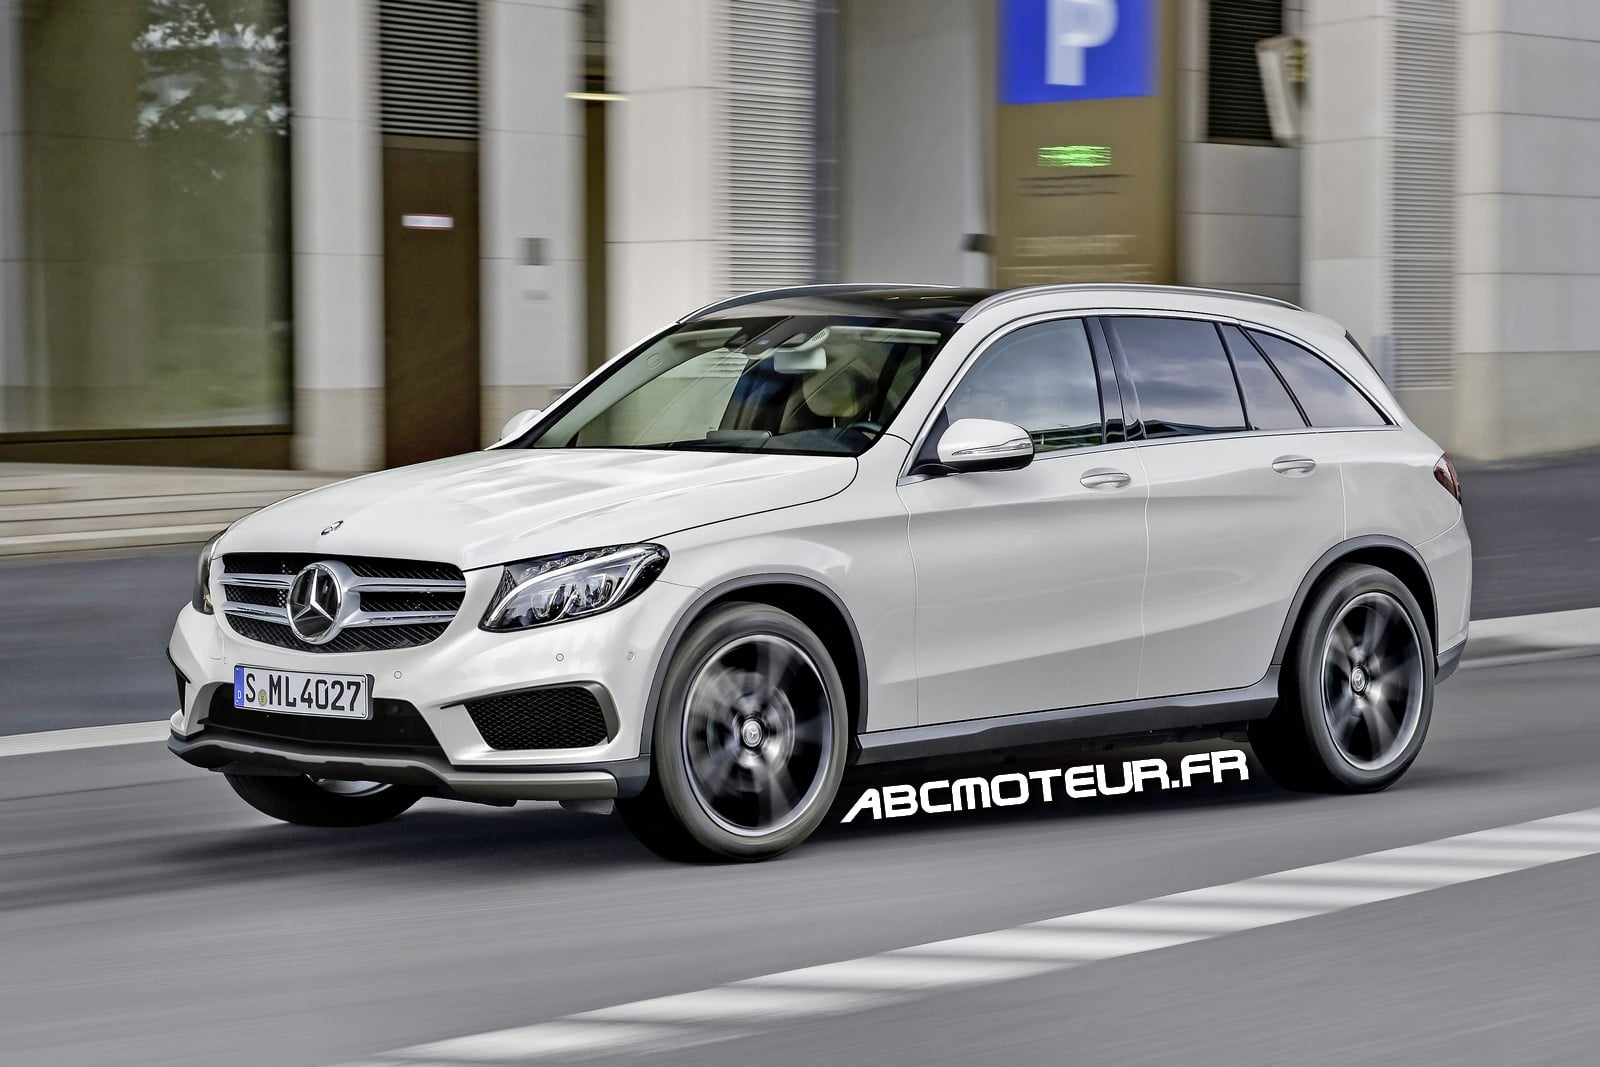 spyshot le mercedes glc plug in hybrid 2016 en photos. Black Bedroom Furniture Sets. Home Design Ideas